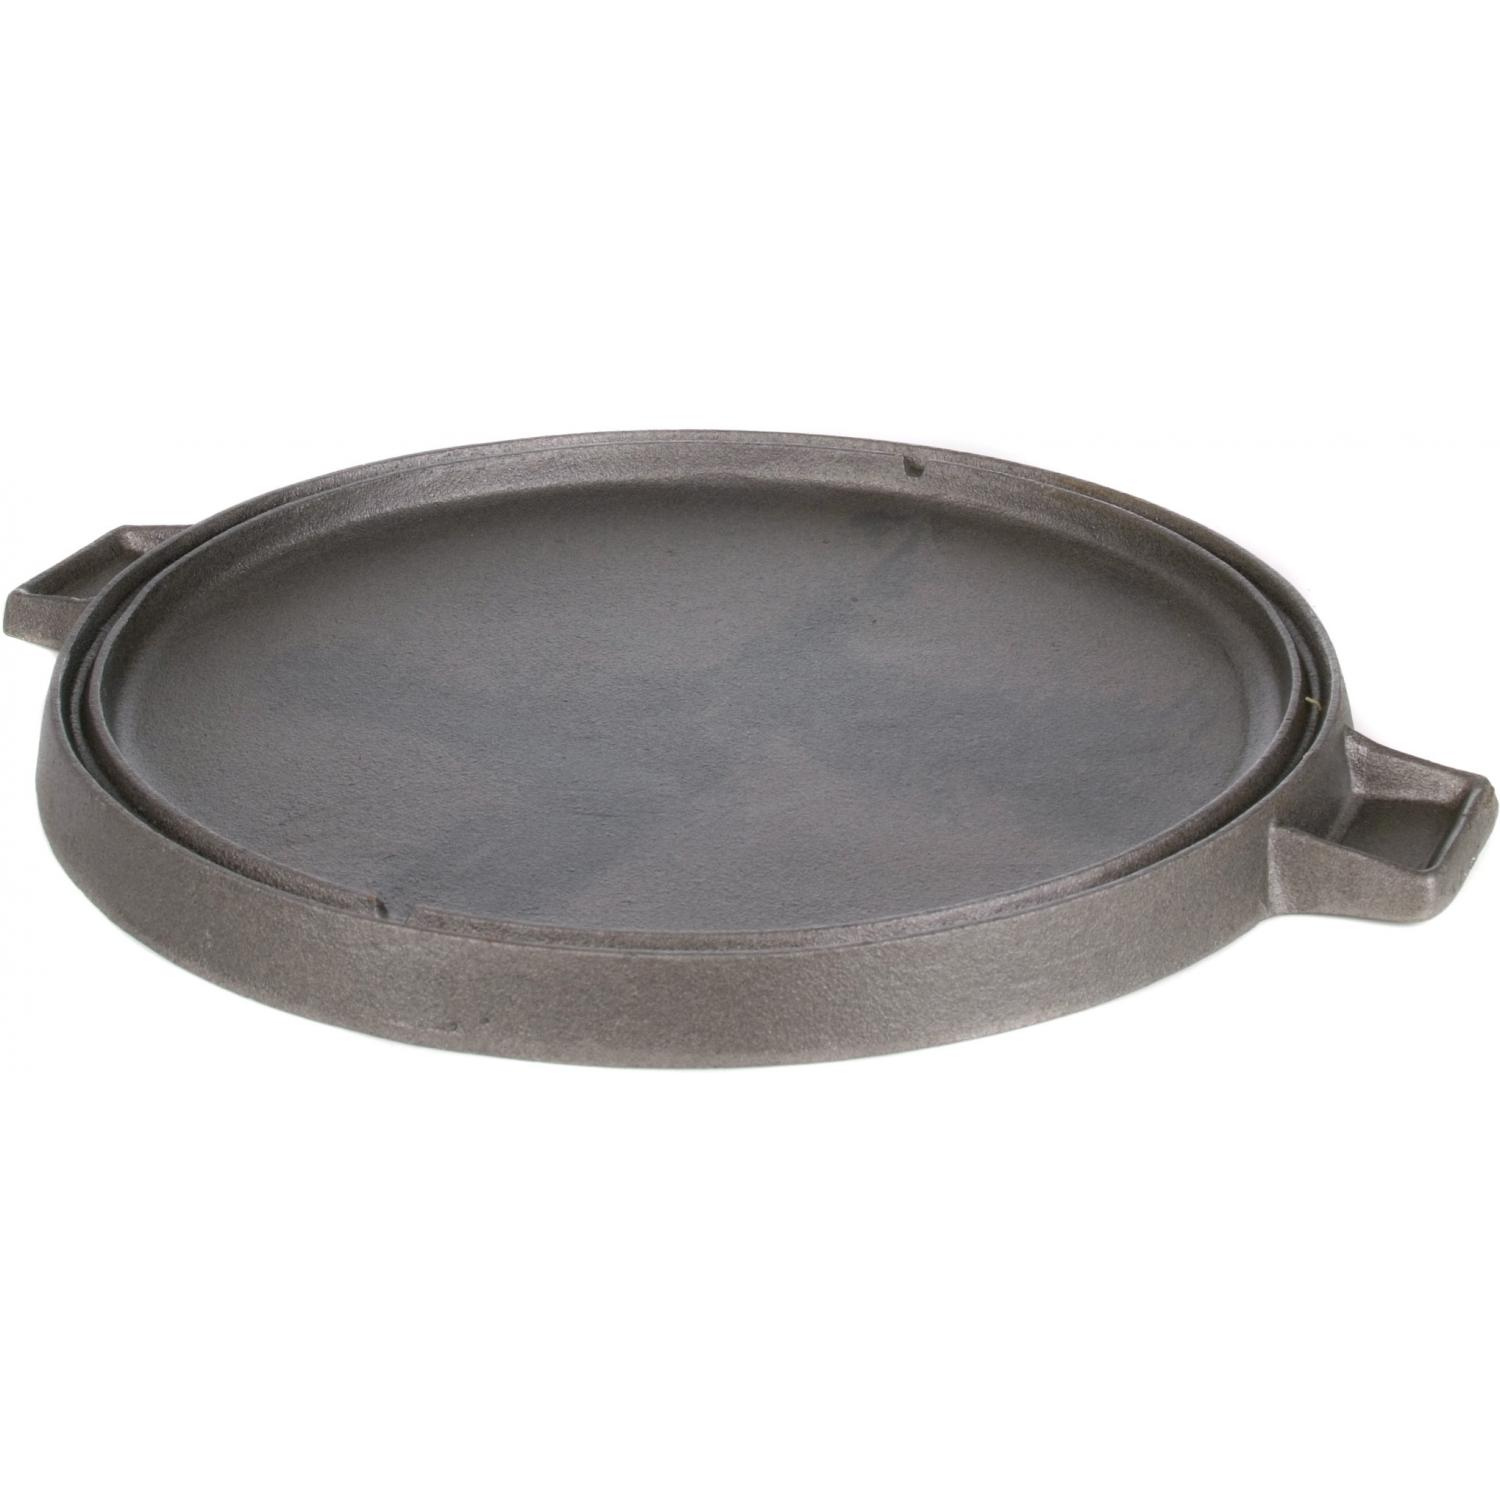 Cajun Cookware Griddles 14 Inch Reversible Round Cast Iron Griddle